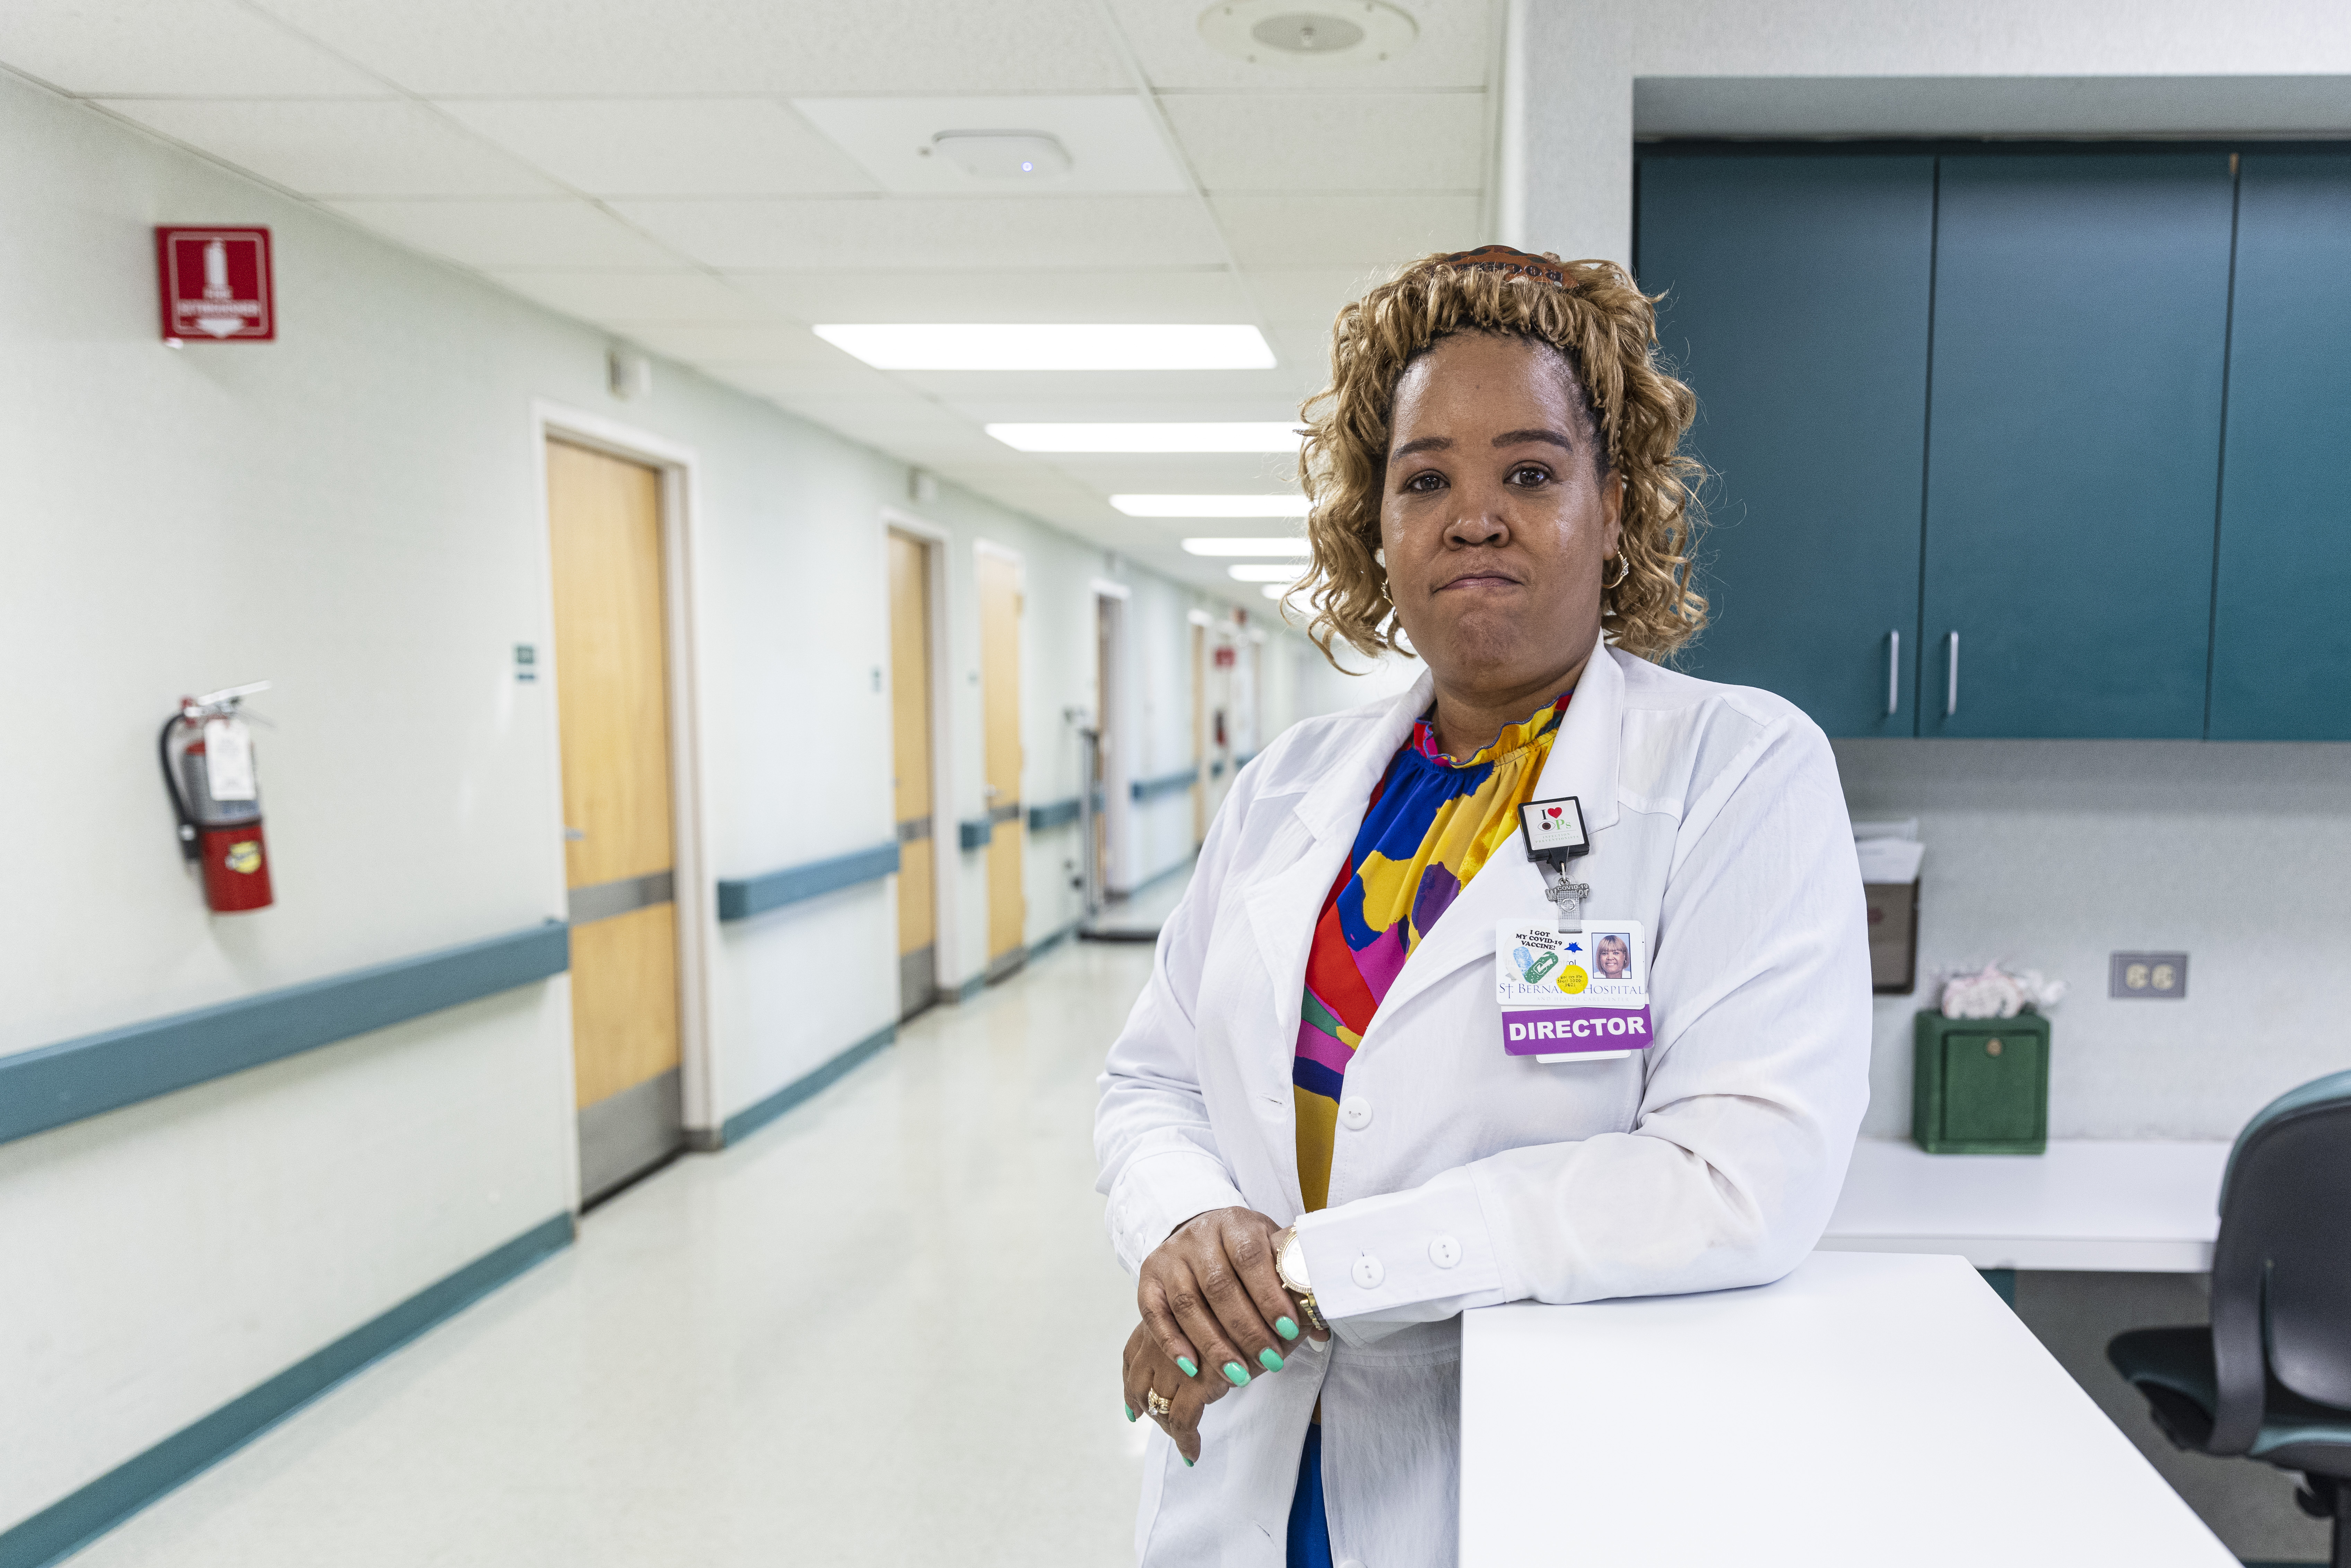 Rochelle Bello, director of infection prevention at St. Bernard Hospital, worries about the latest COVID surge in largely unvaccinated Englewood.